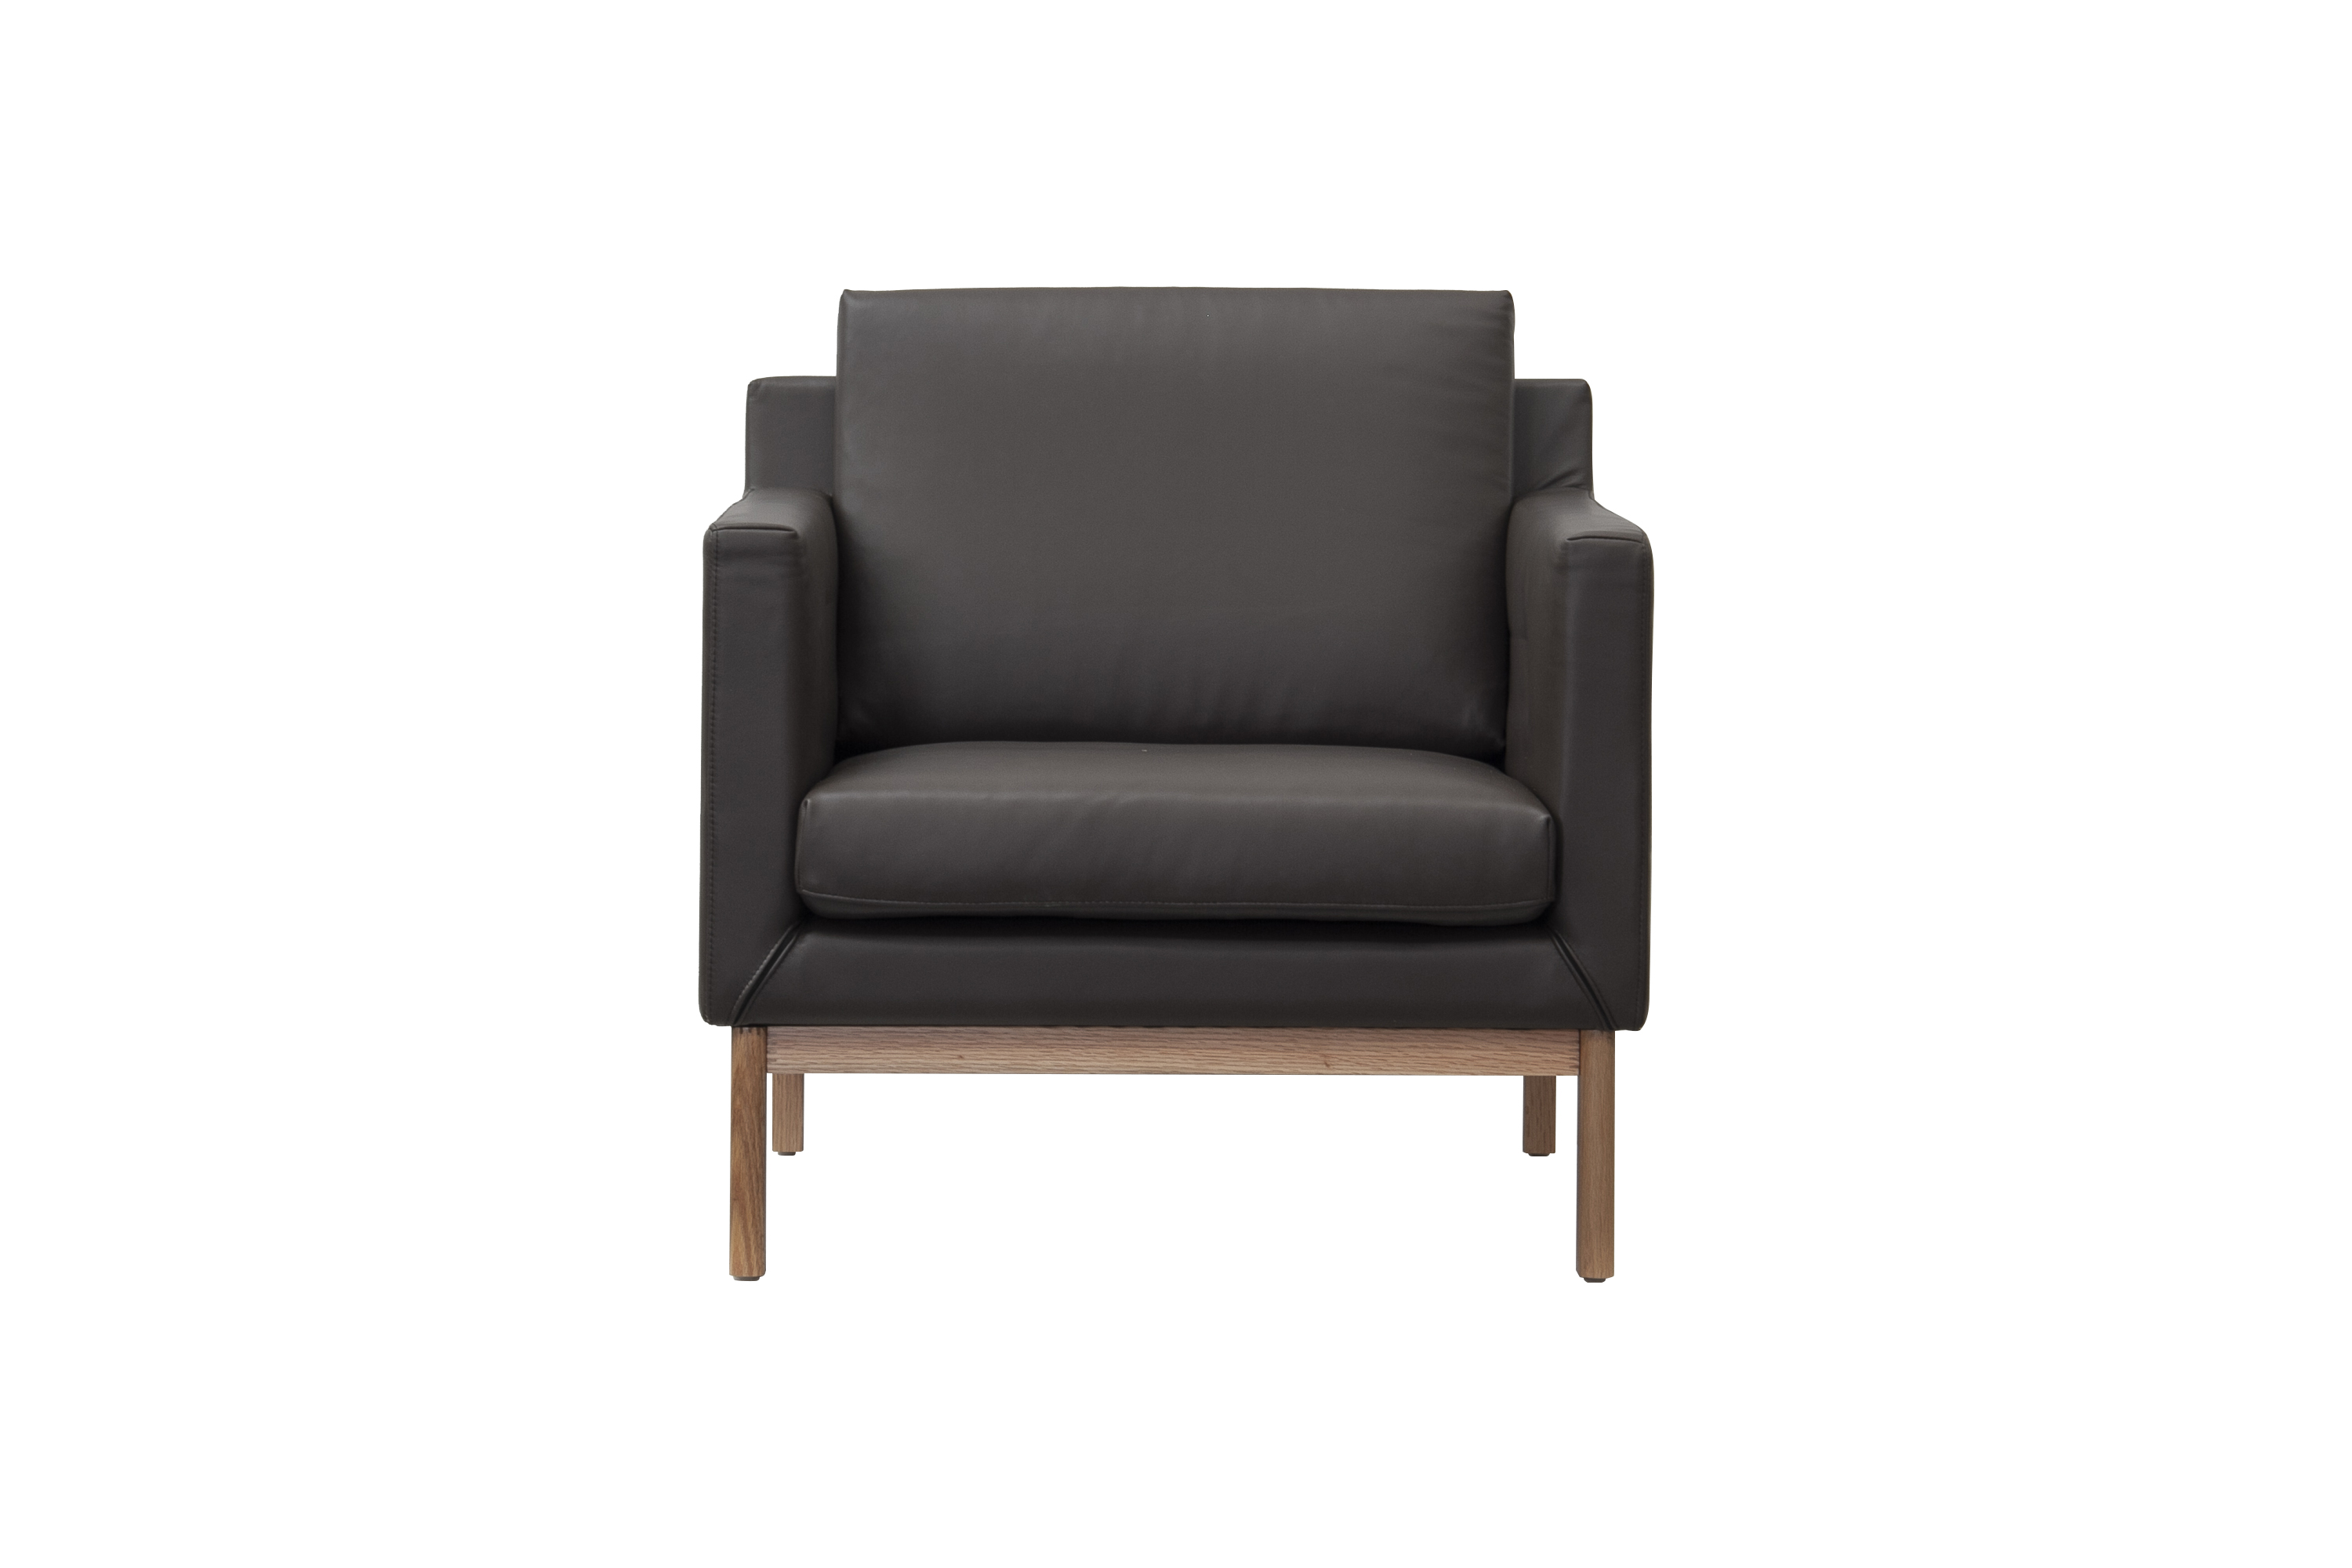 bolton-lounge-chair-in-chocolate-leather